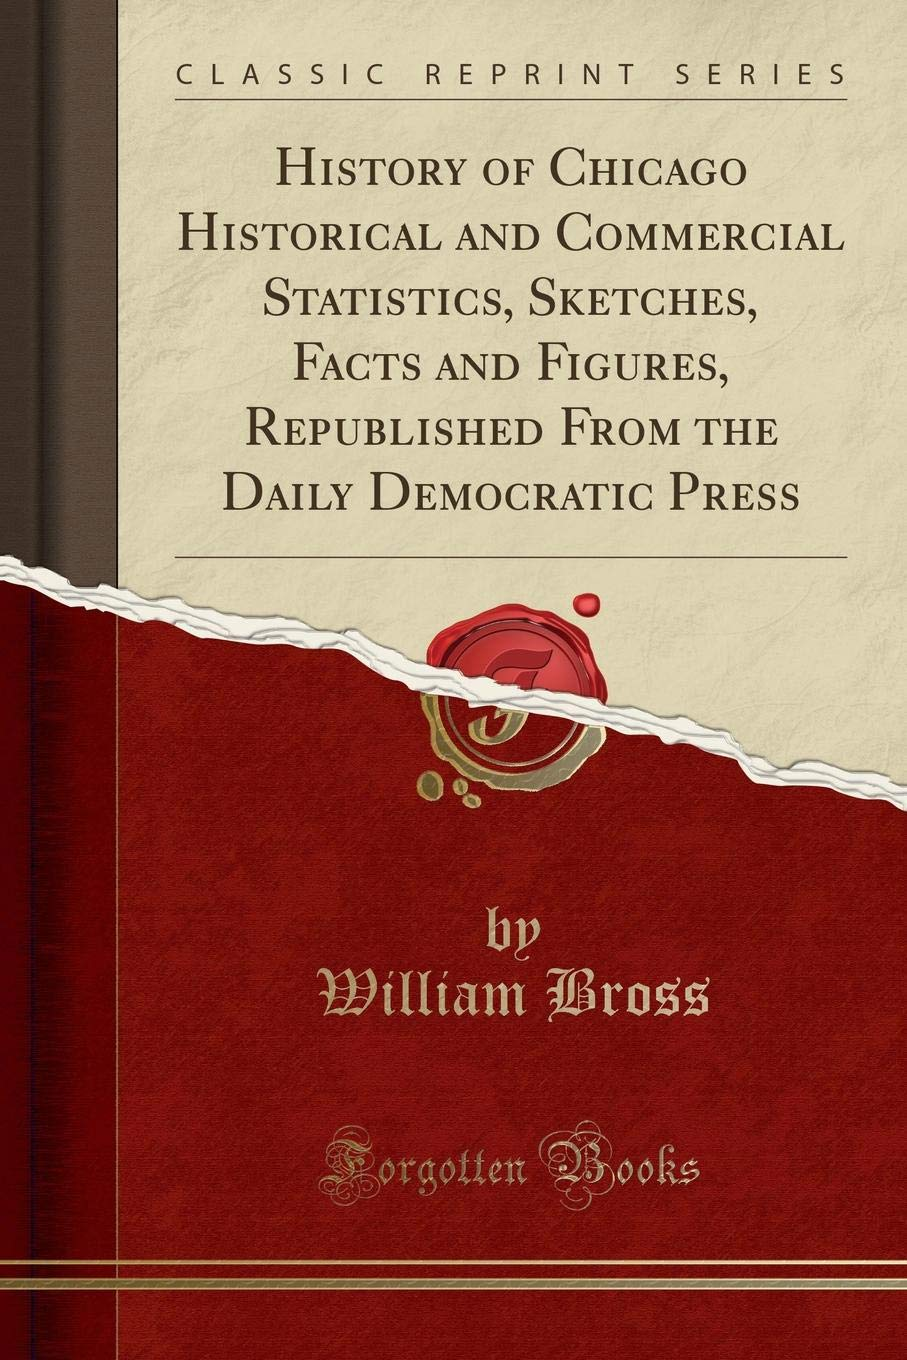 History of Chicago Historical and Commercial Statistics, Sketches, Facts and Figures, Republished From the Daily Democratic Press (Classic Reprint) ebook